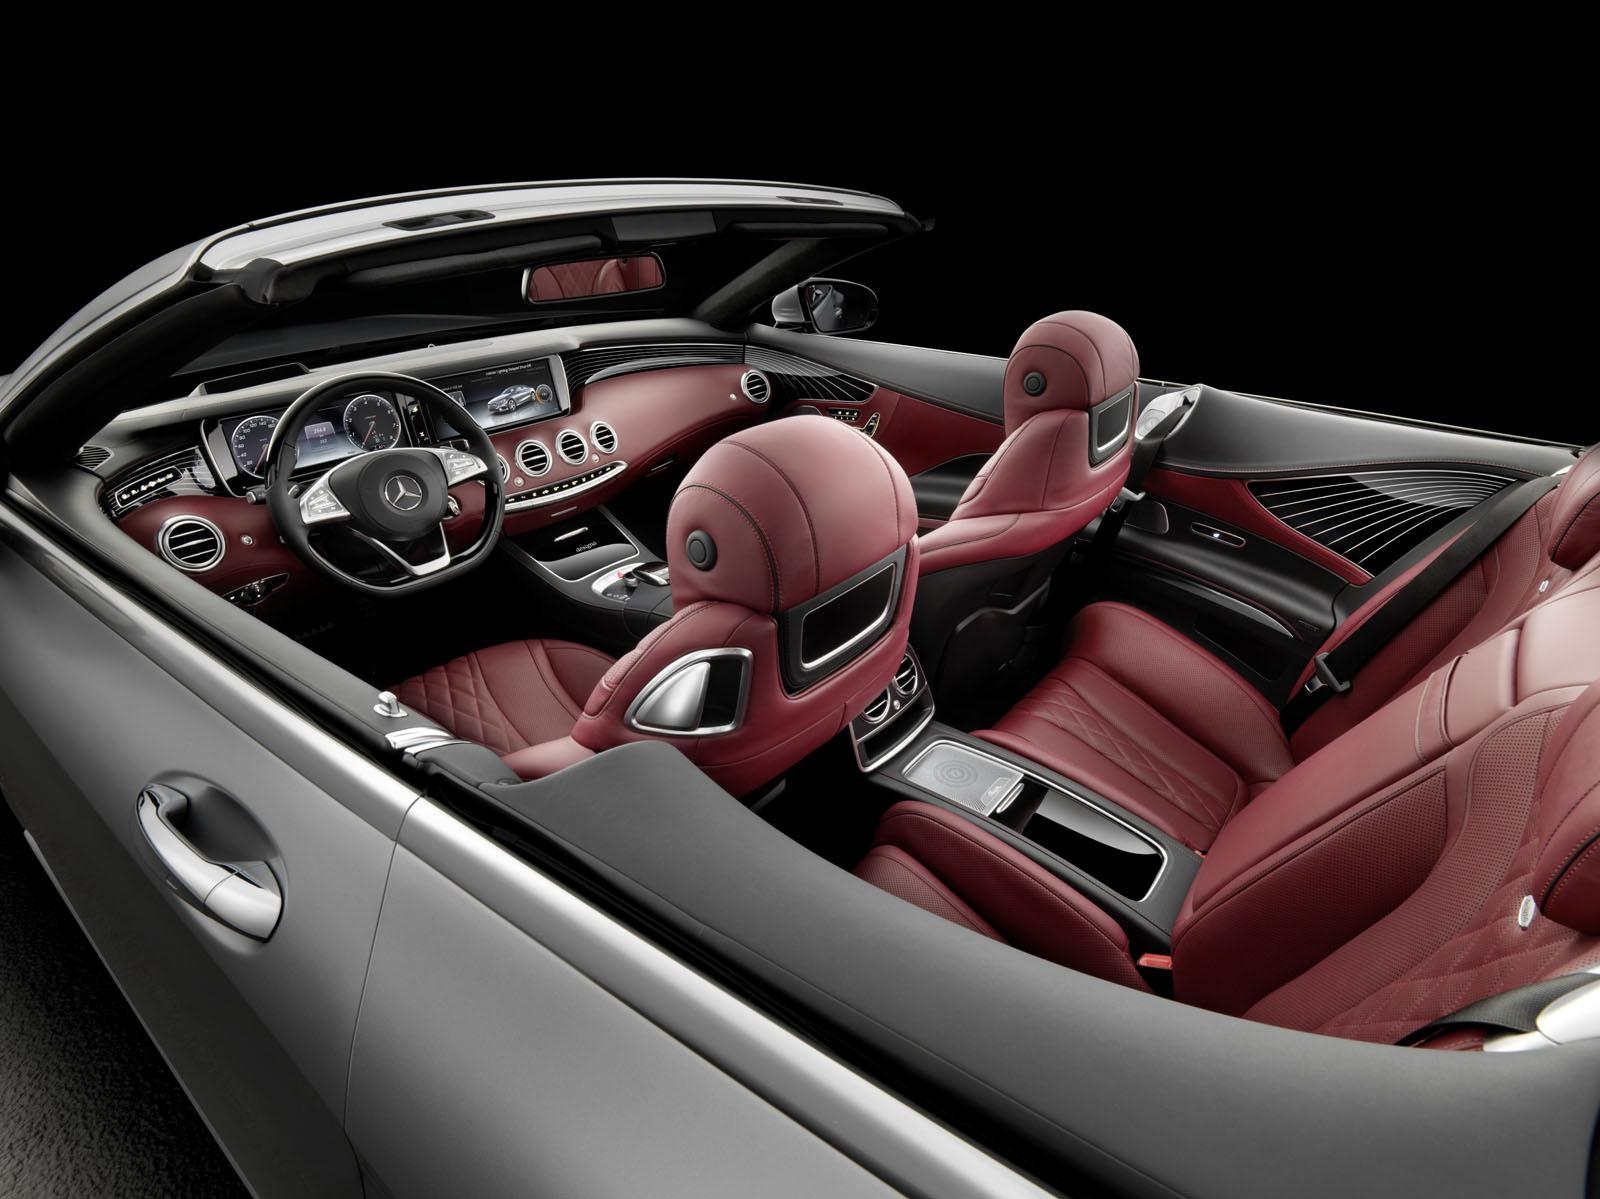 2016 Mercedes S Class Cabriolet cabin unveiled